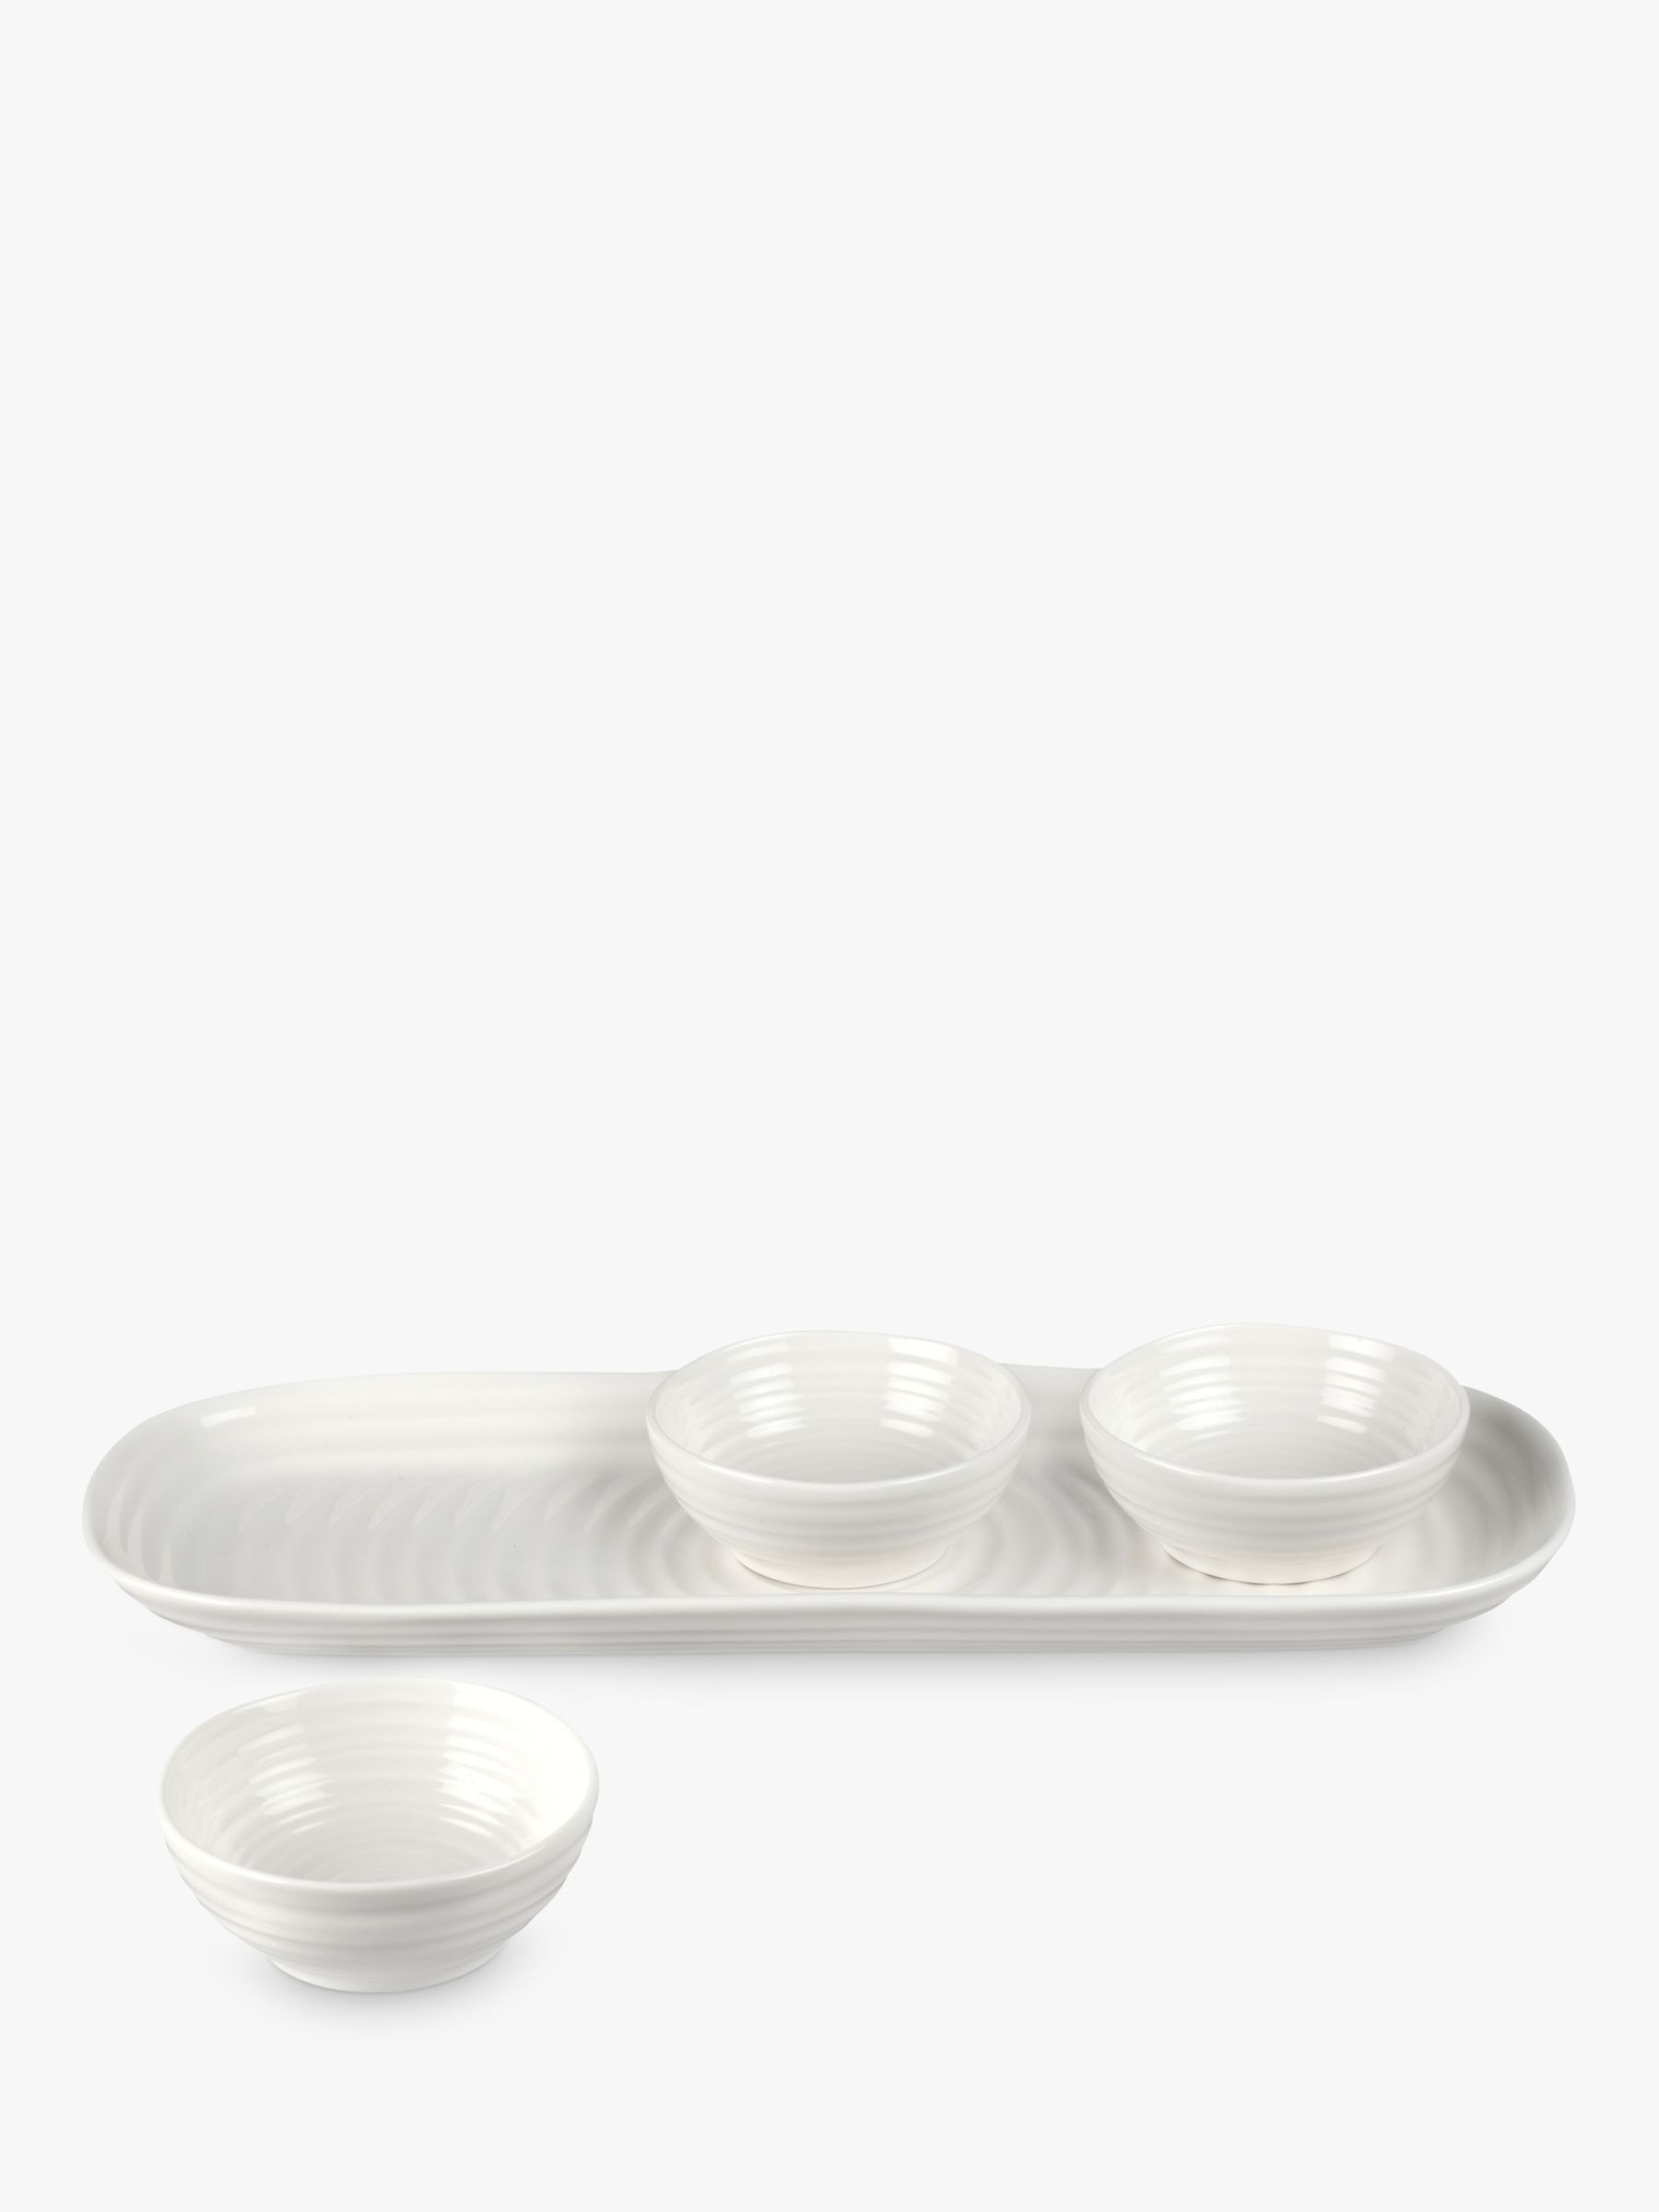 Sophie Conran Sophie Conran for Portmeirion Dip Bowls On Tray, Set of 3, White